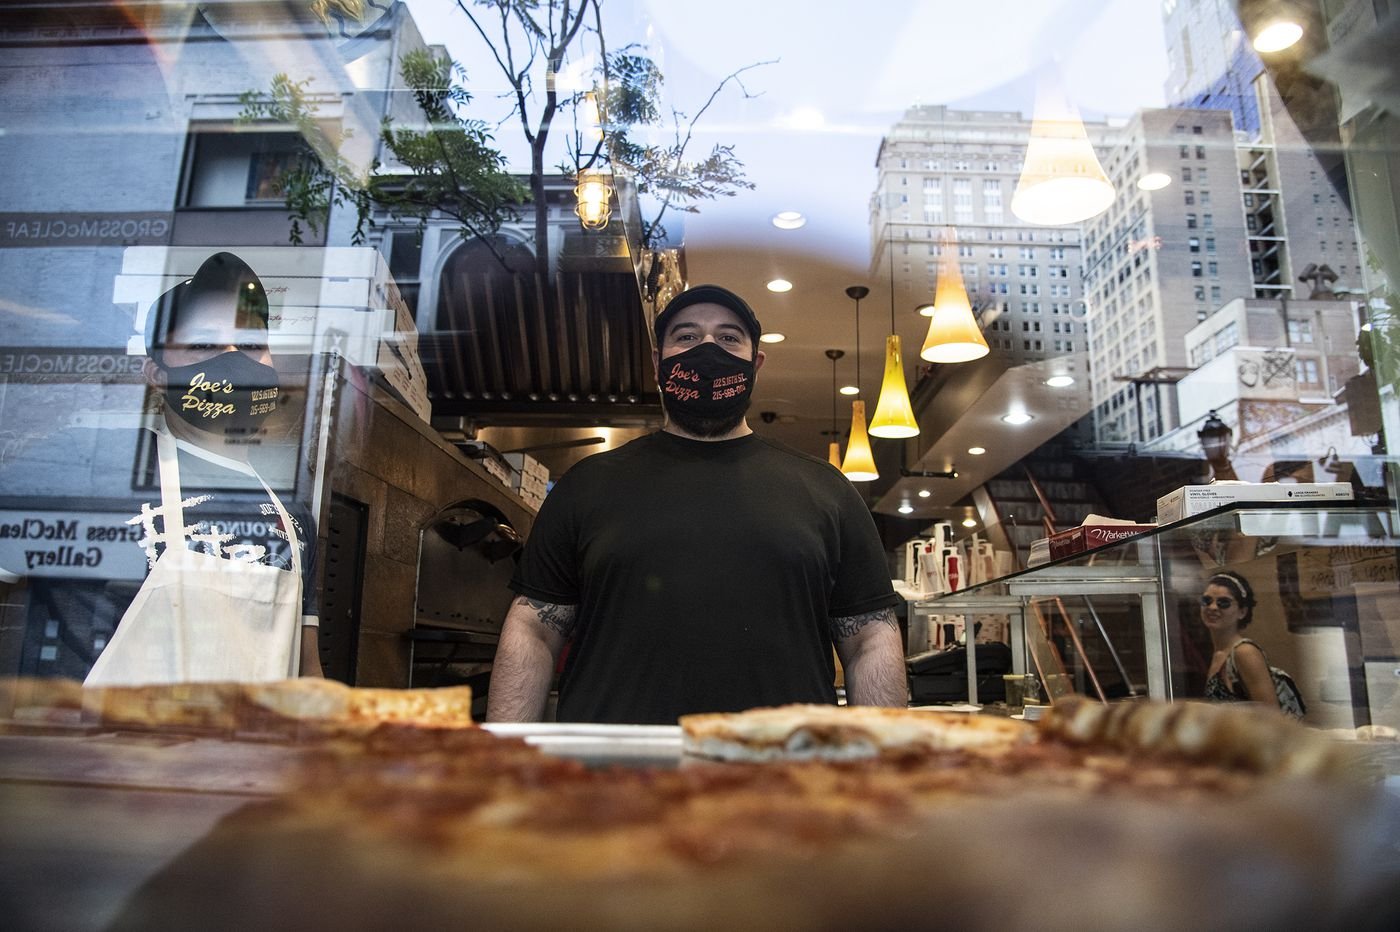 Some family-owned Philly businesses survived the Center City looting by standing guard